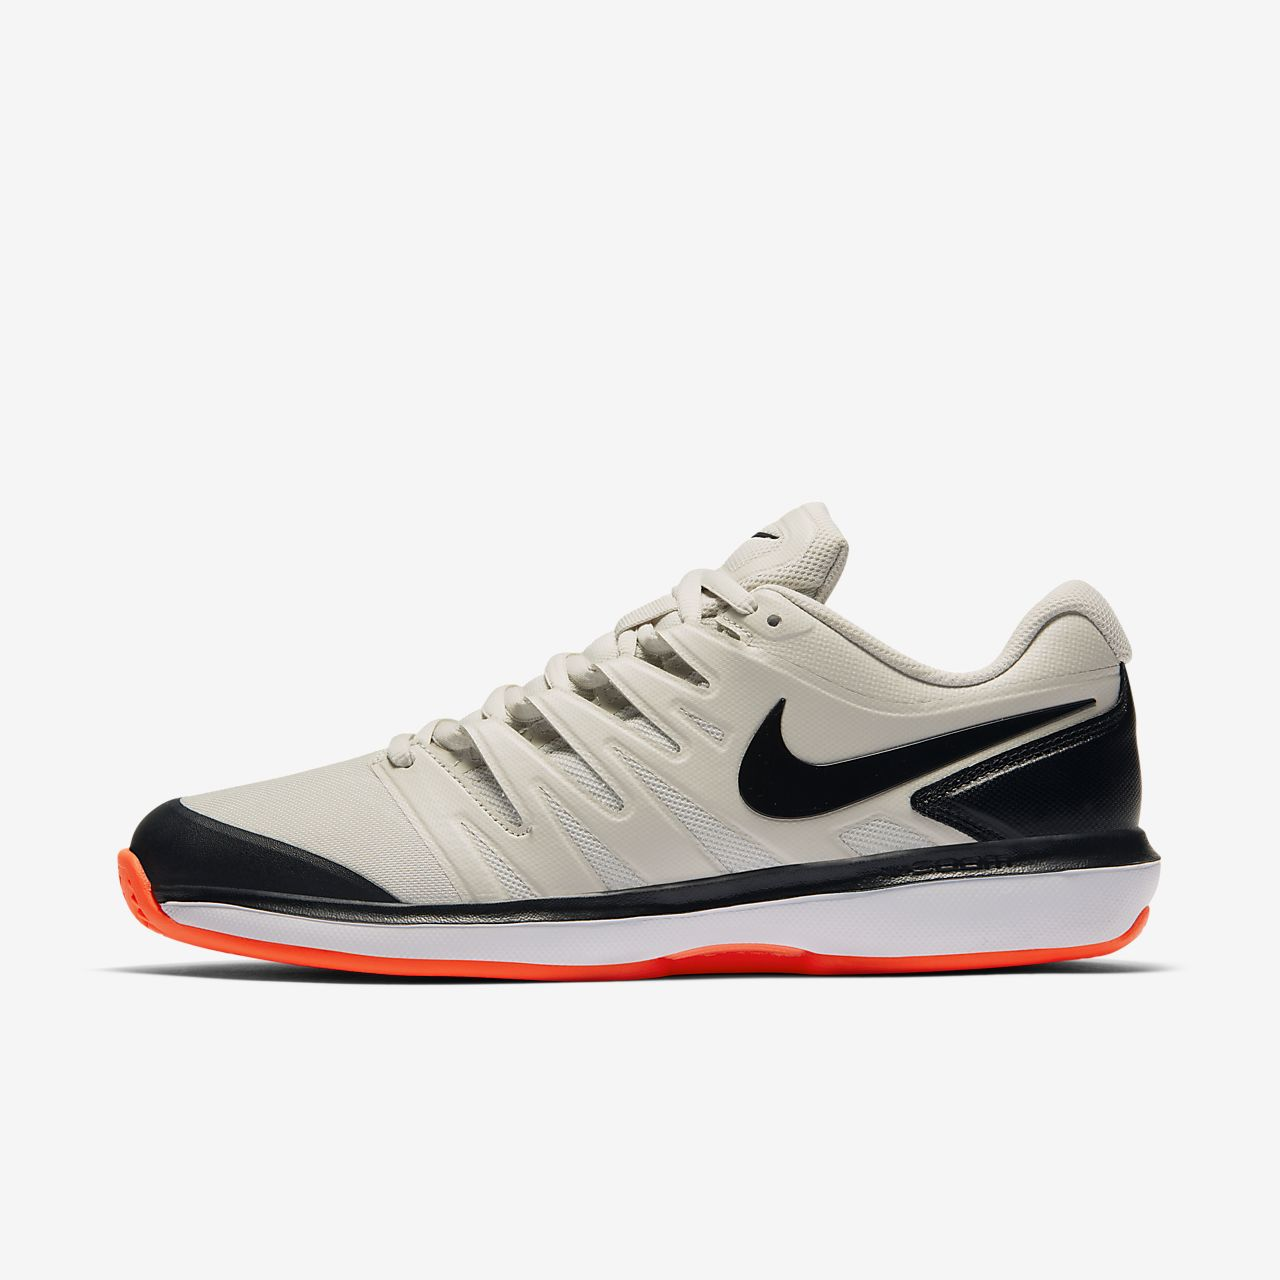 Exklusive Schuhe Nike Zoom Cage 2 Clay Tennisschuhe